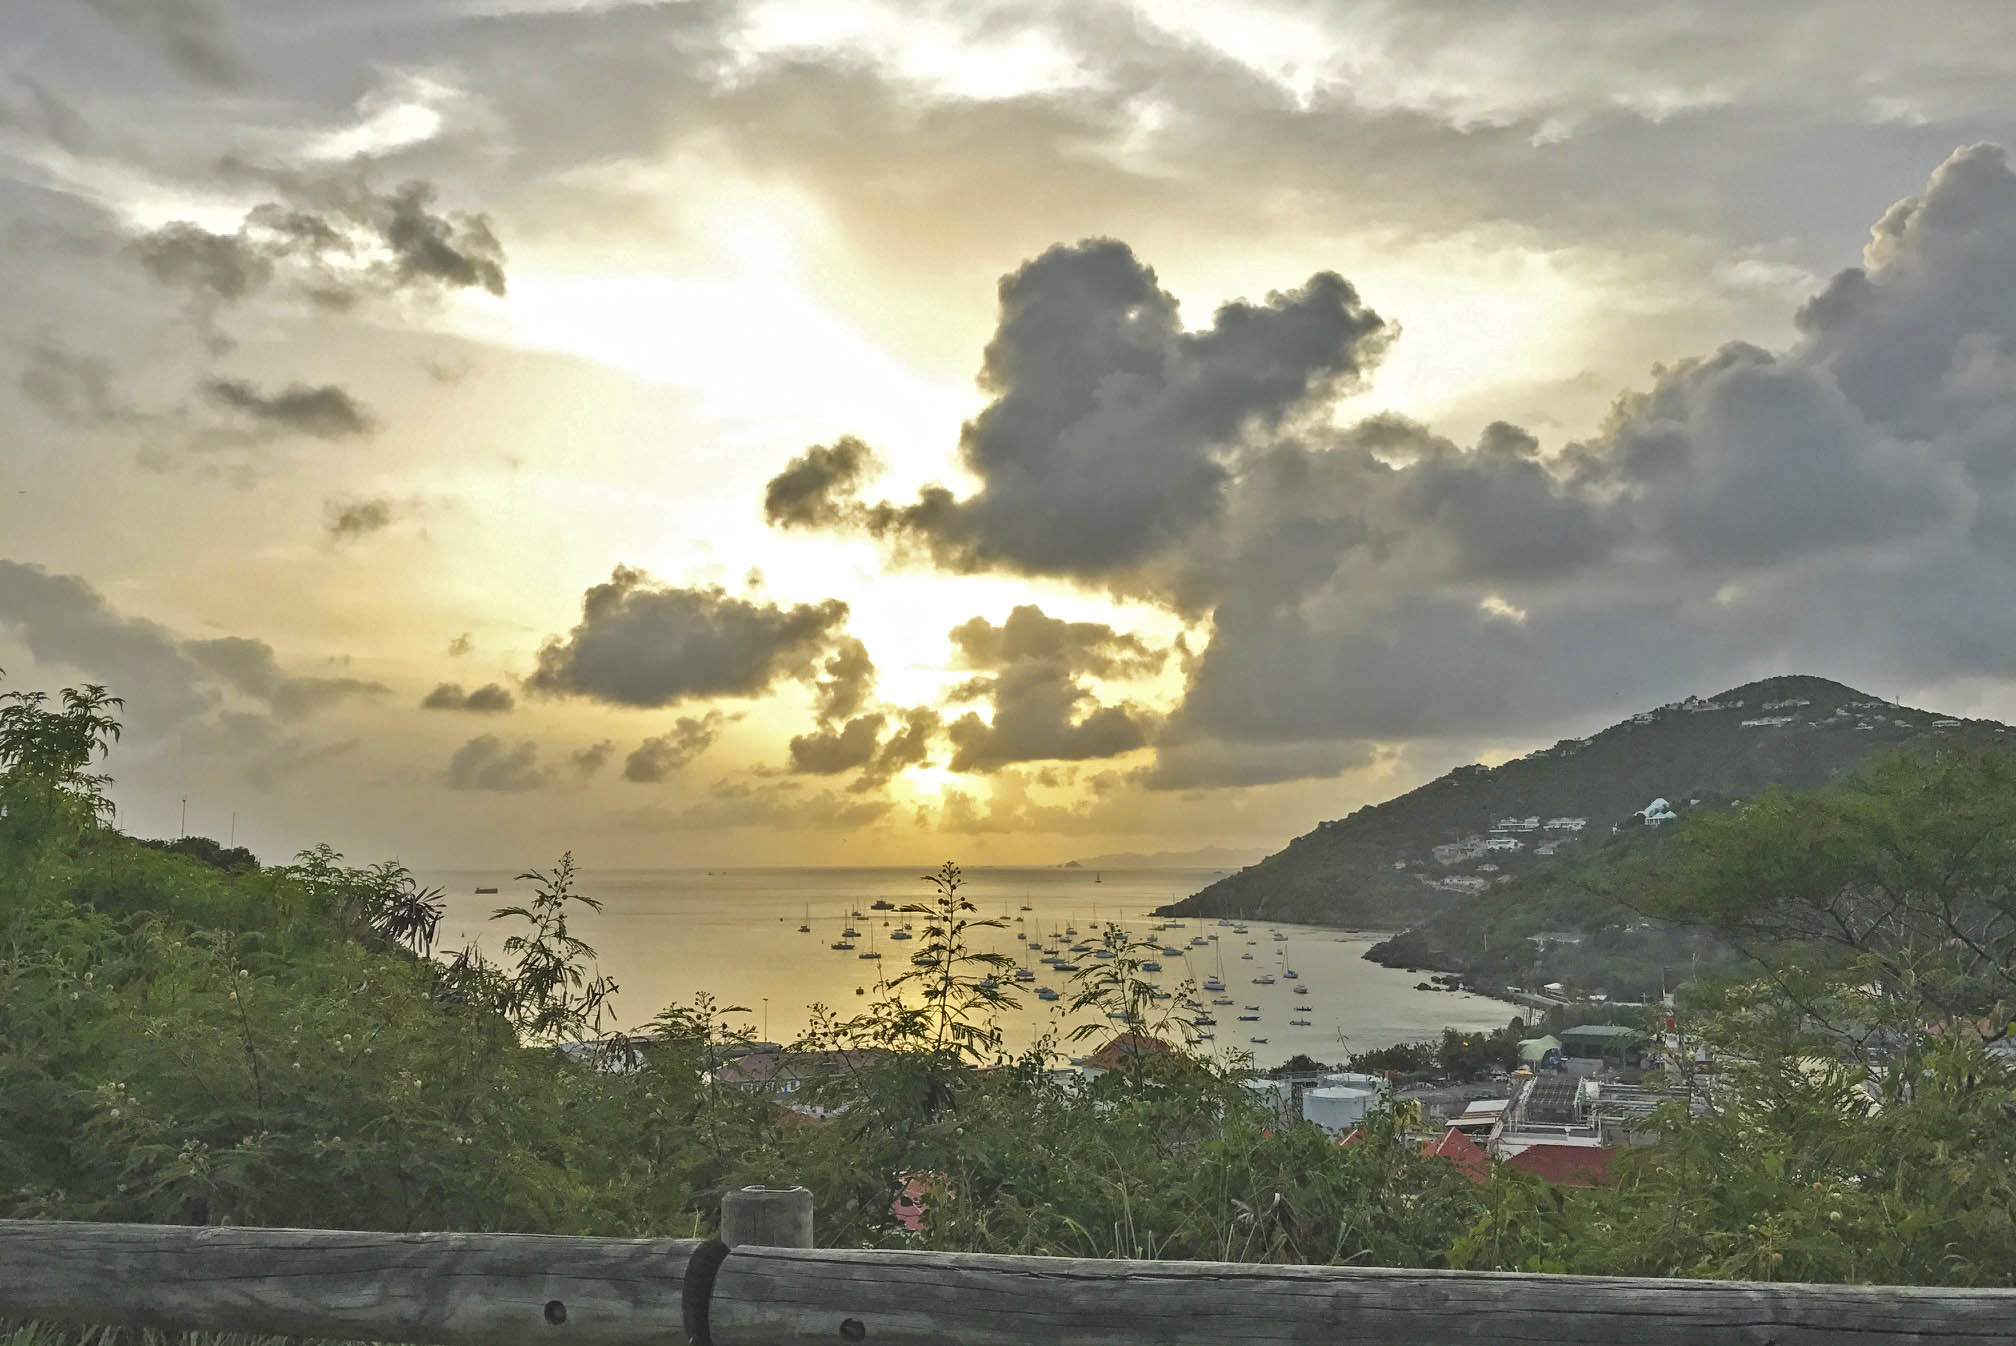 gustavia - capital de st barth